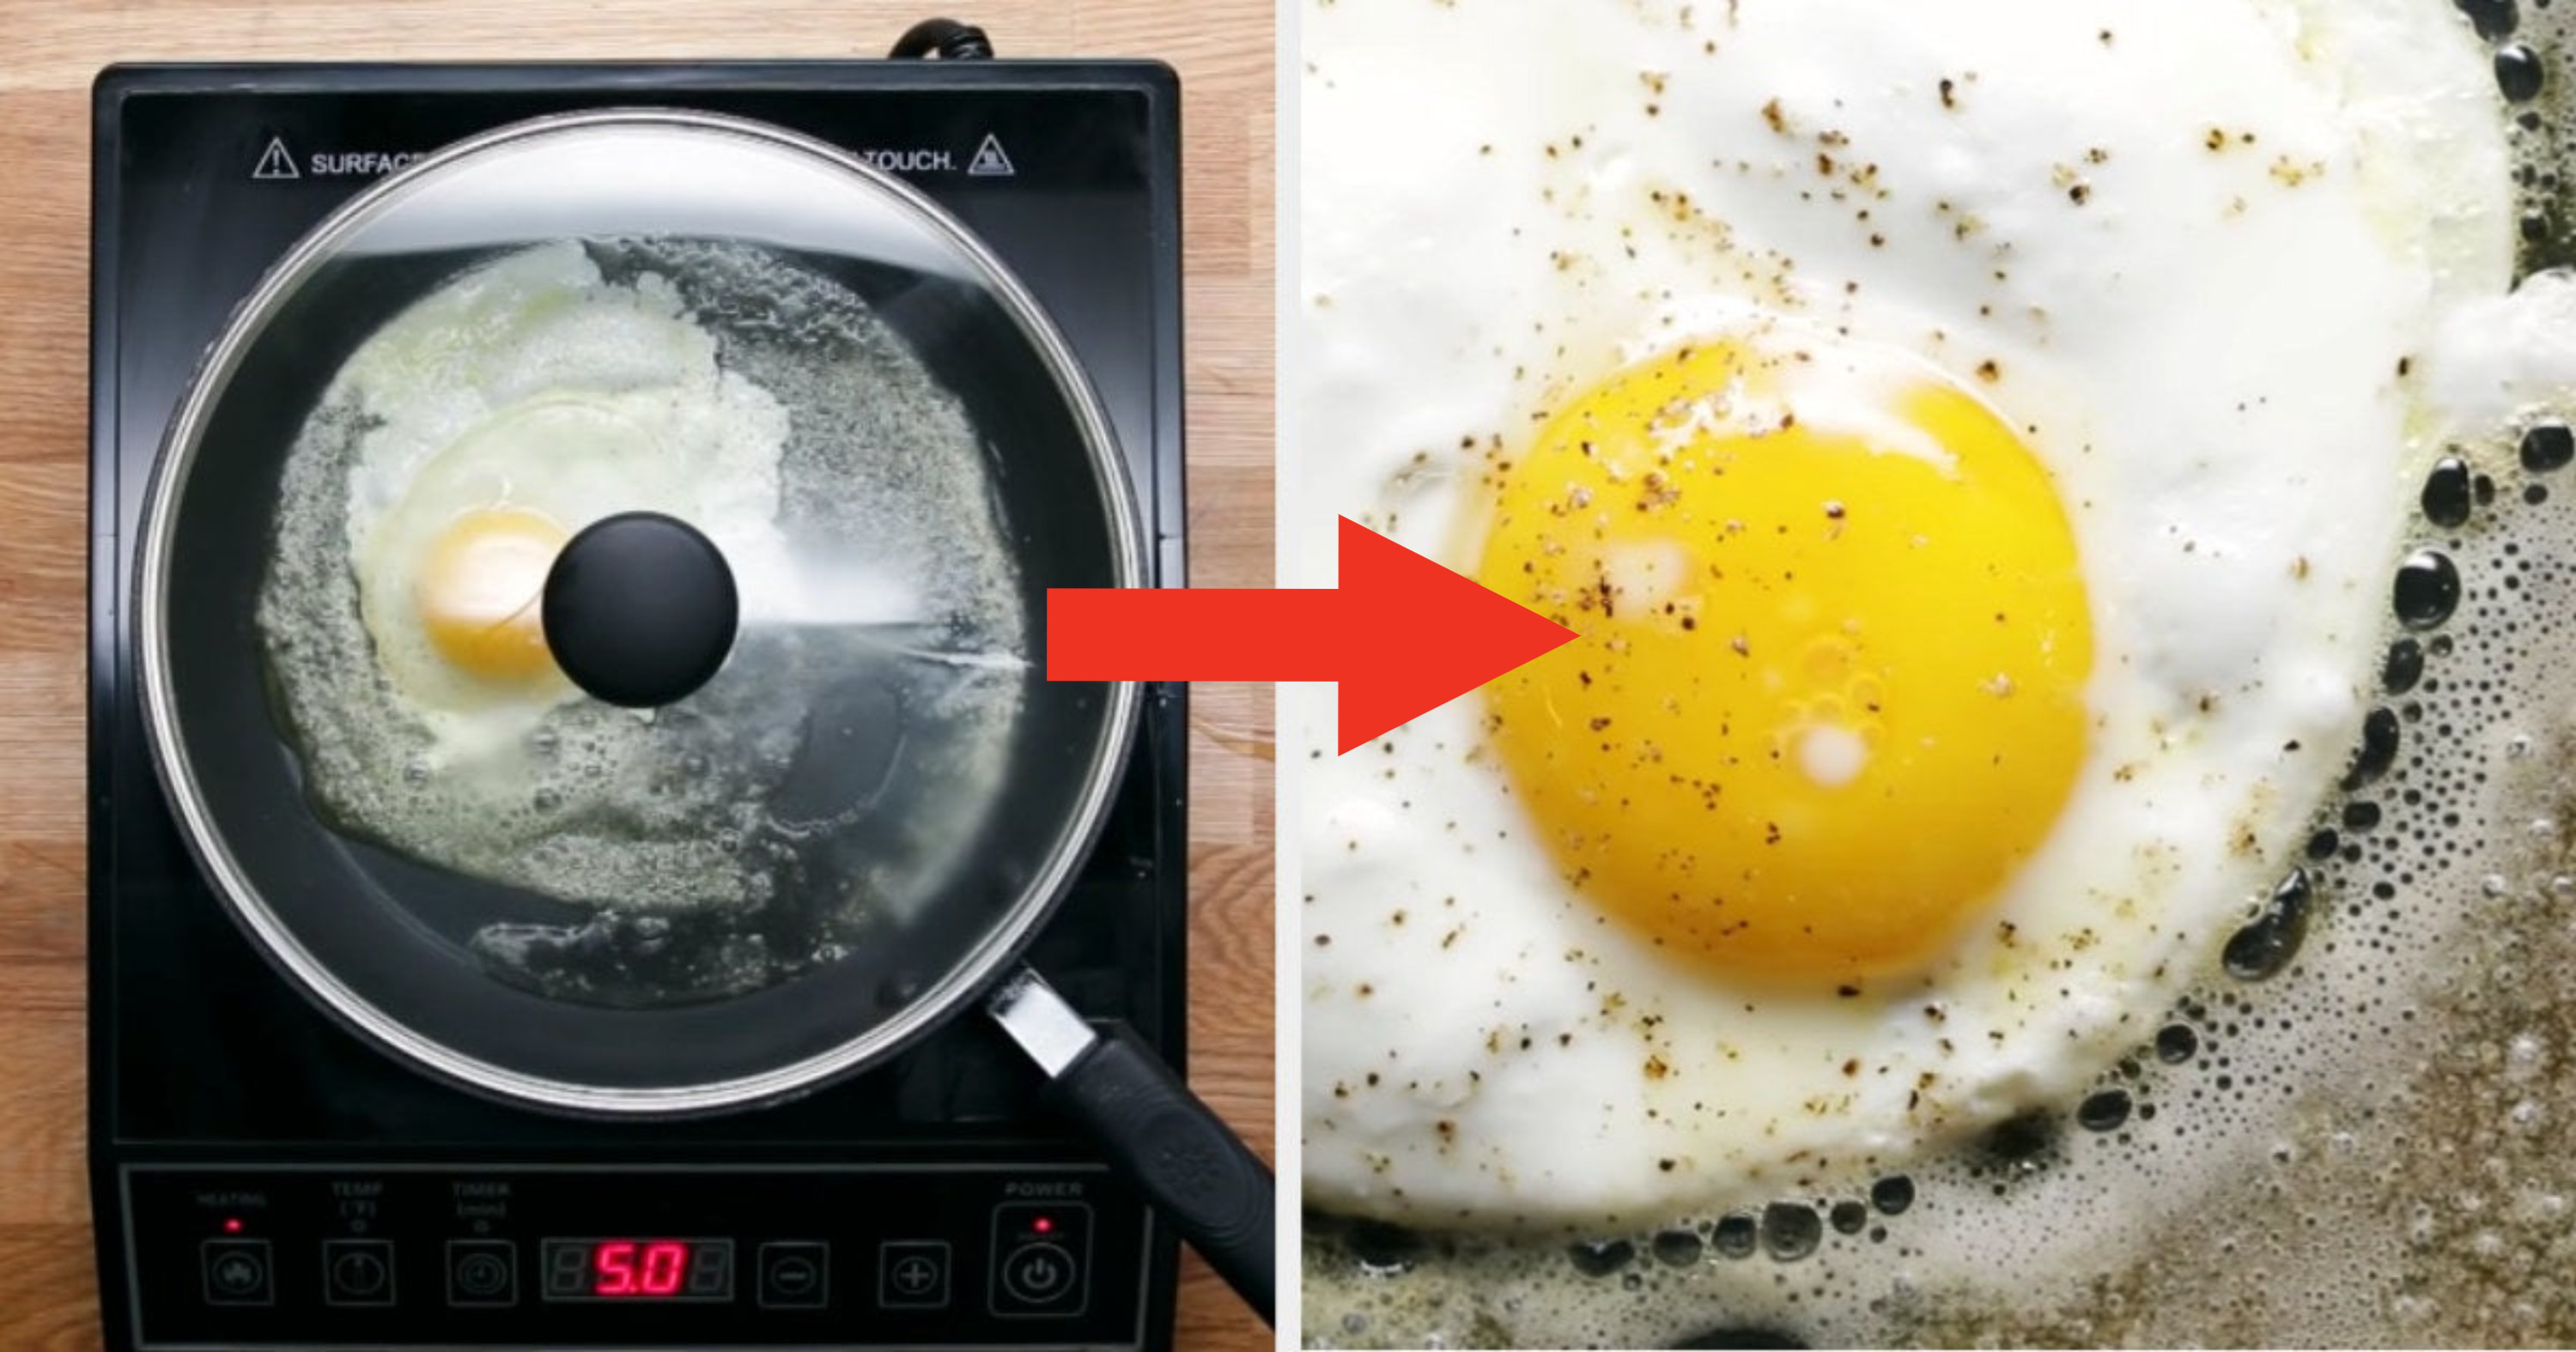 An over-easy egg being cooked in a pan with the lid on top of it